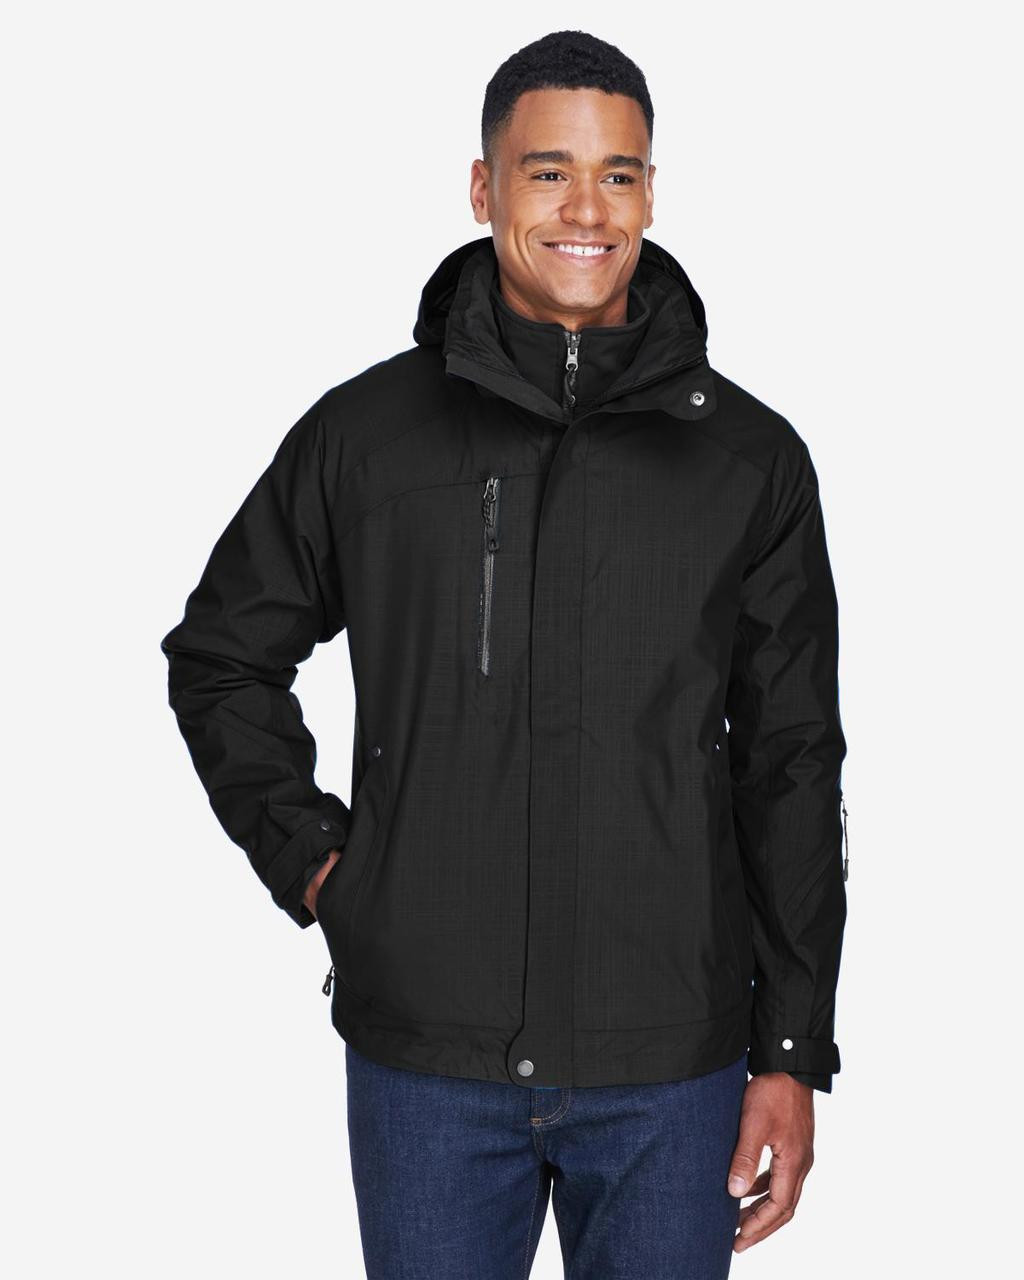 Black - Front, 88178 North End Caprice 3-in-1 Jacket with Soft Shell Liner | BlankClothing.ca